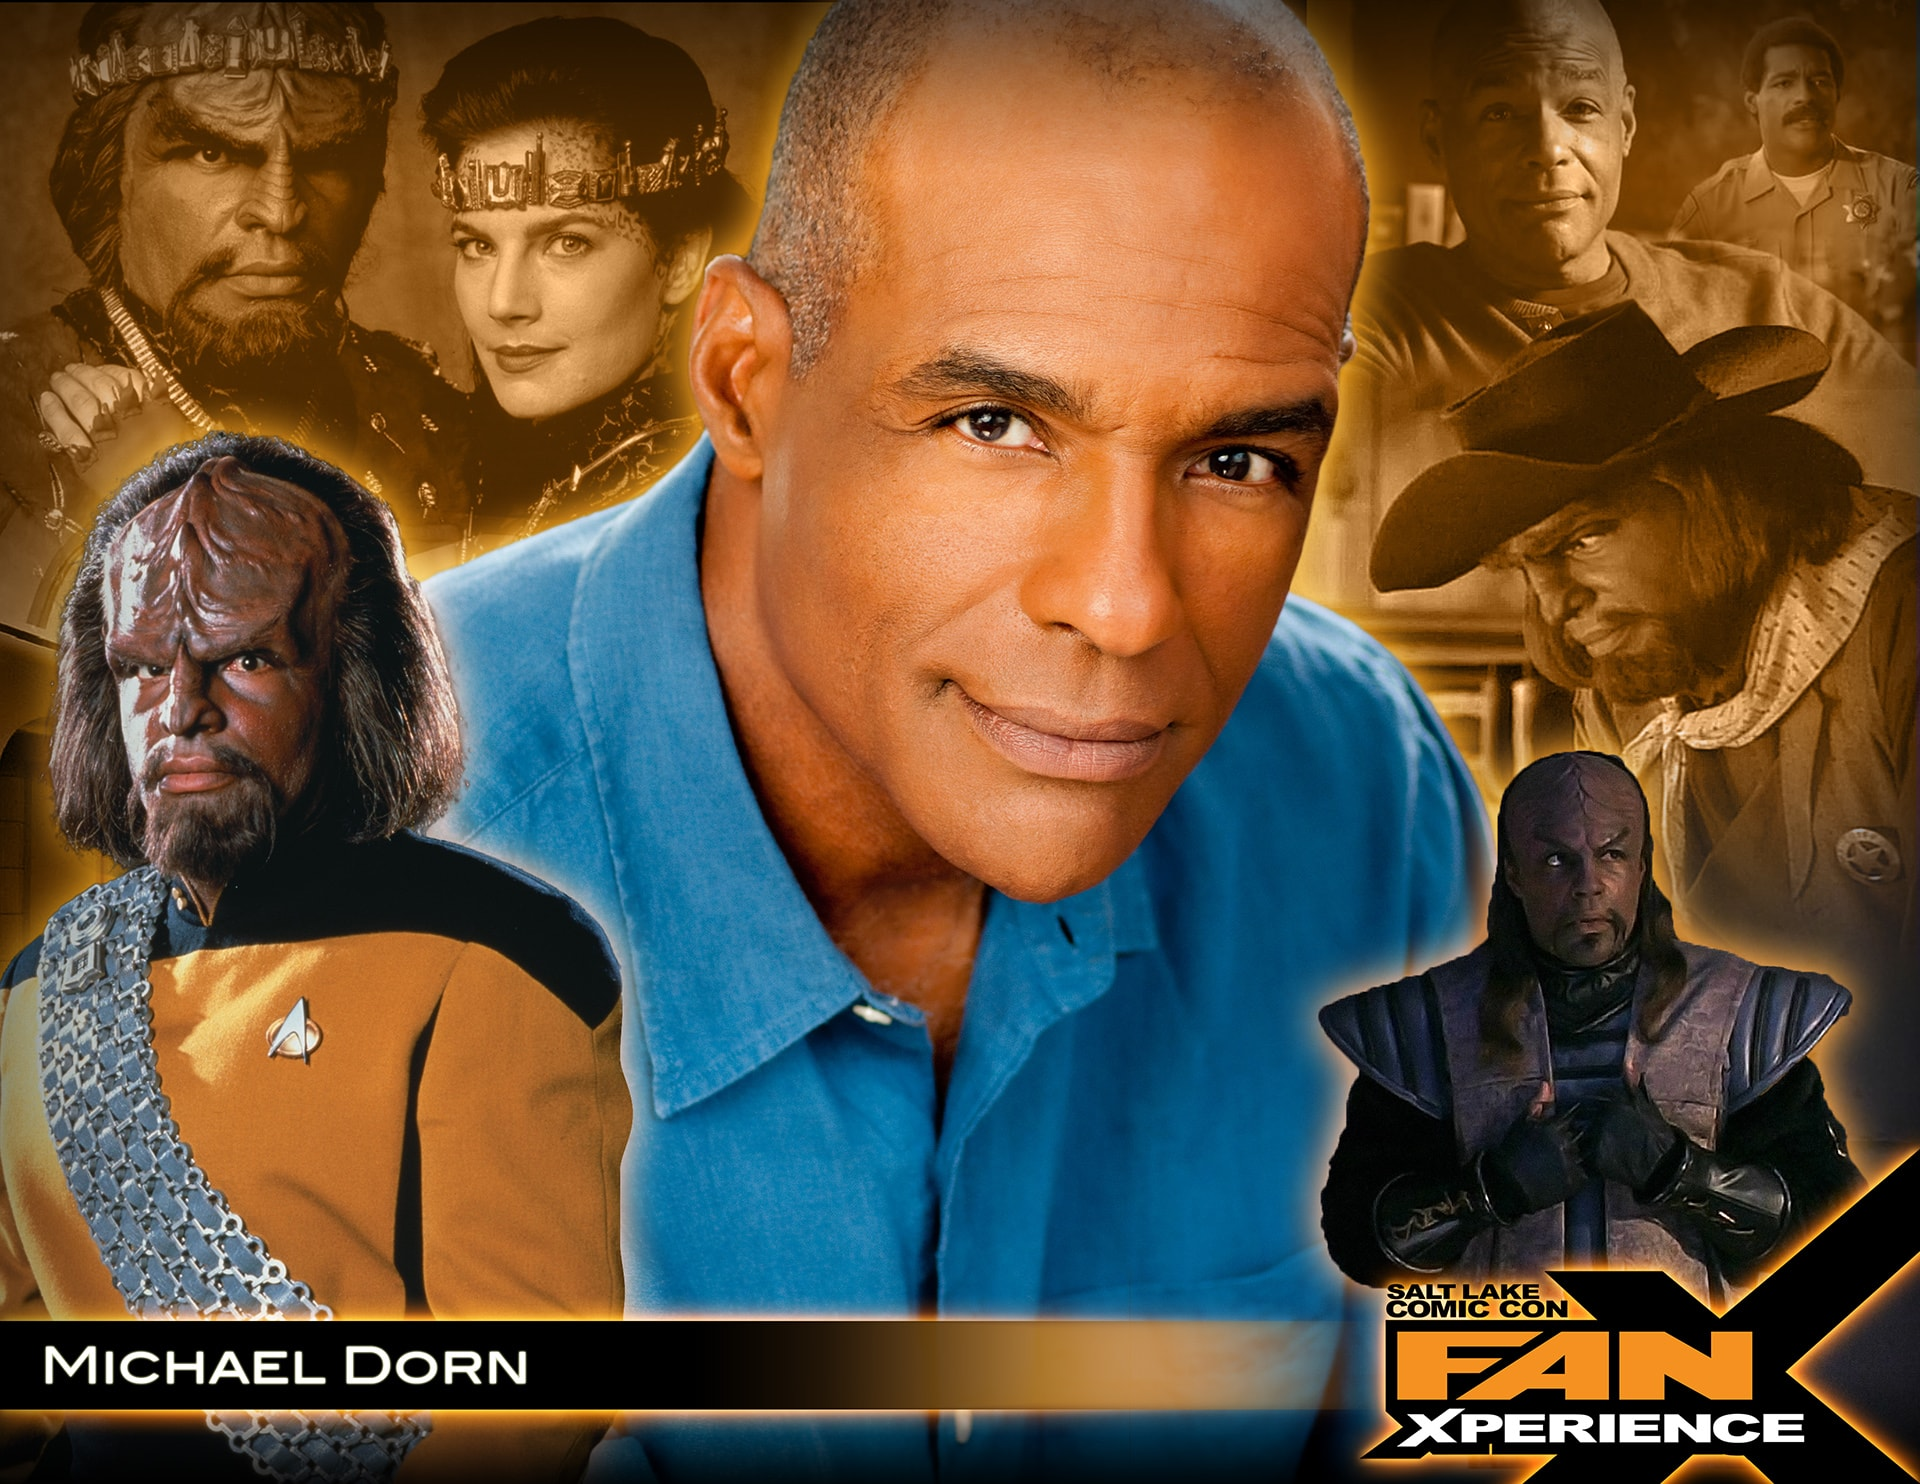 Michael Dorn Full hd wallpapers